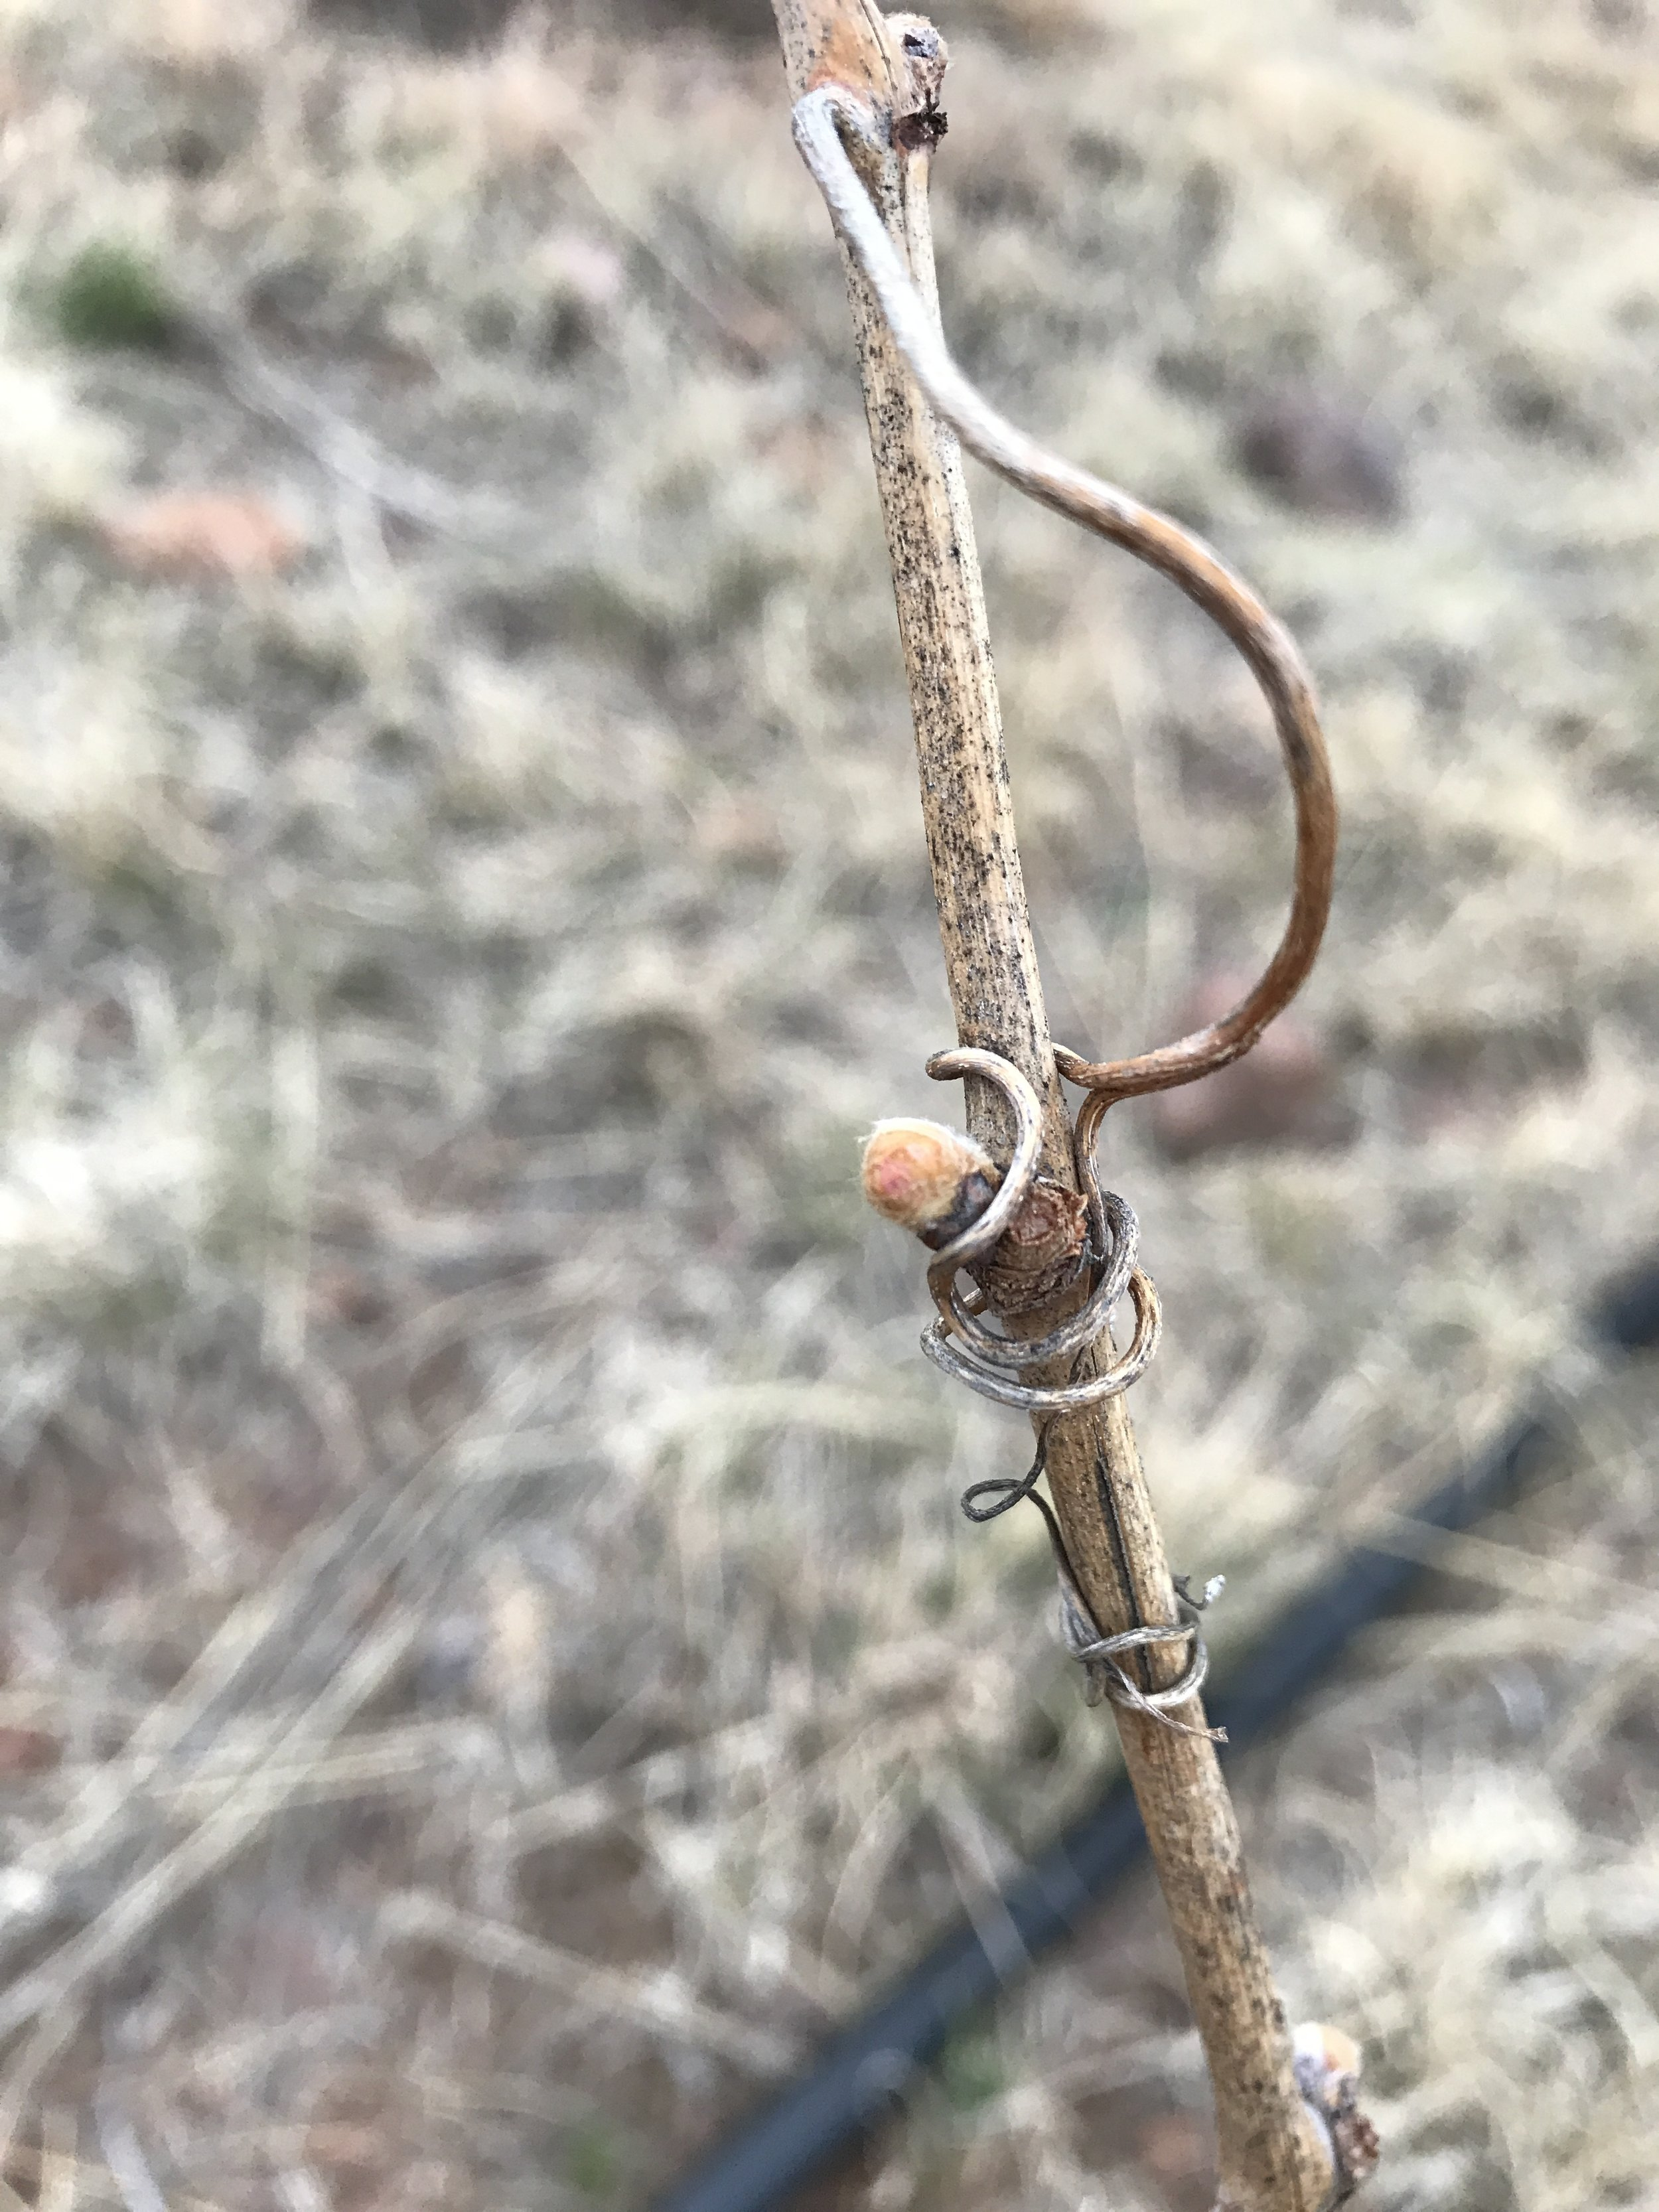 Shortly after that 20 degree weather at the beginning of March we had our first bud swell ever at Alta Marfa. This is a petite manseng vine that was among the first vines that went into the ground last April.